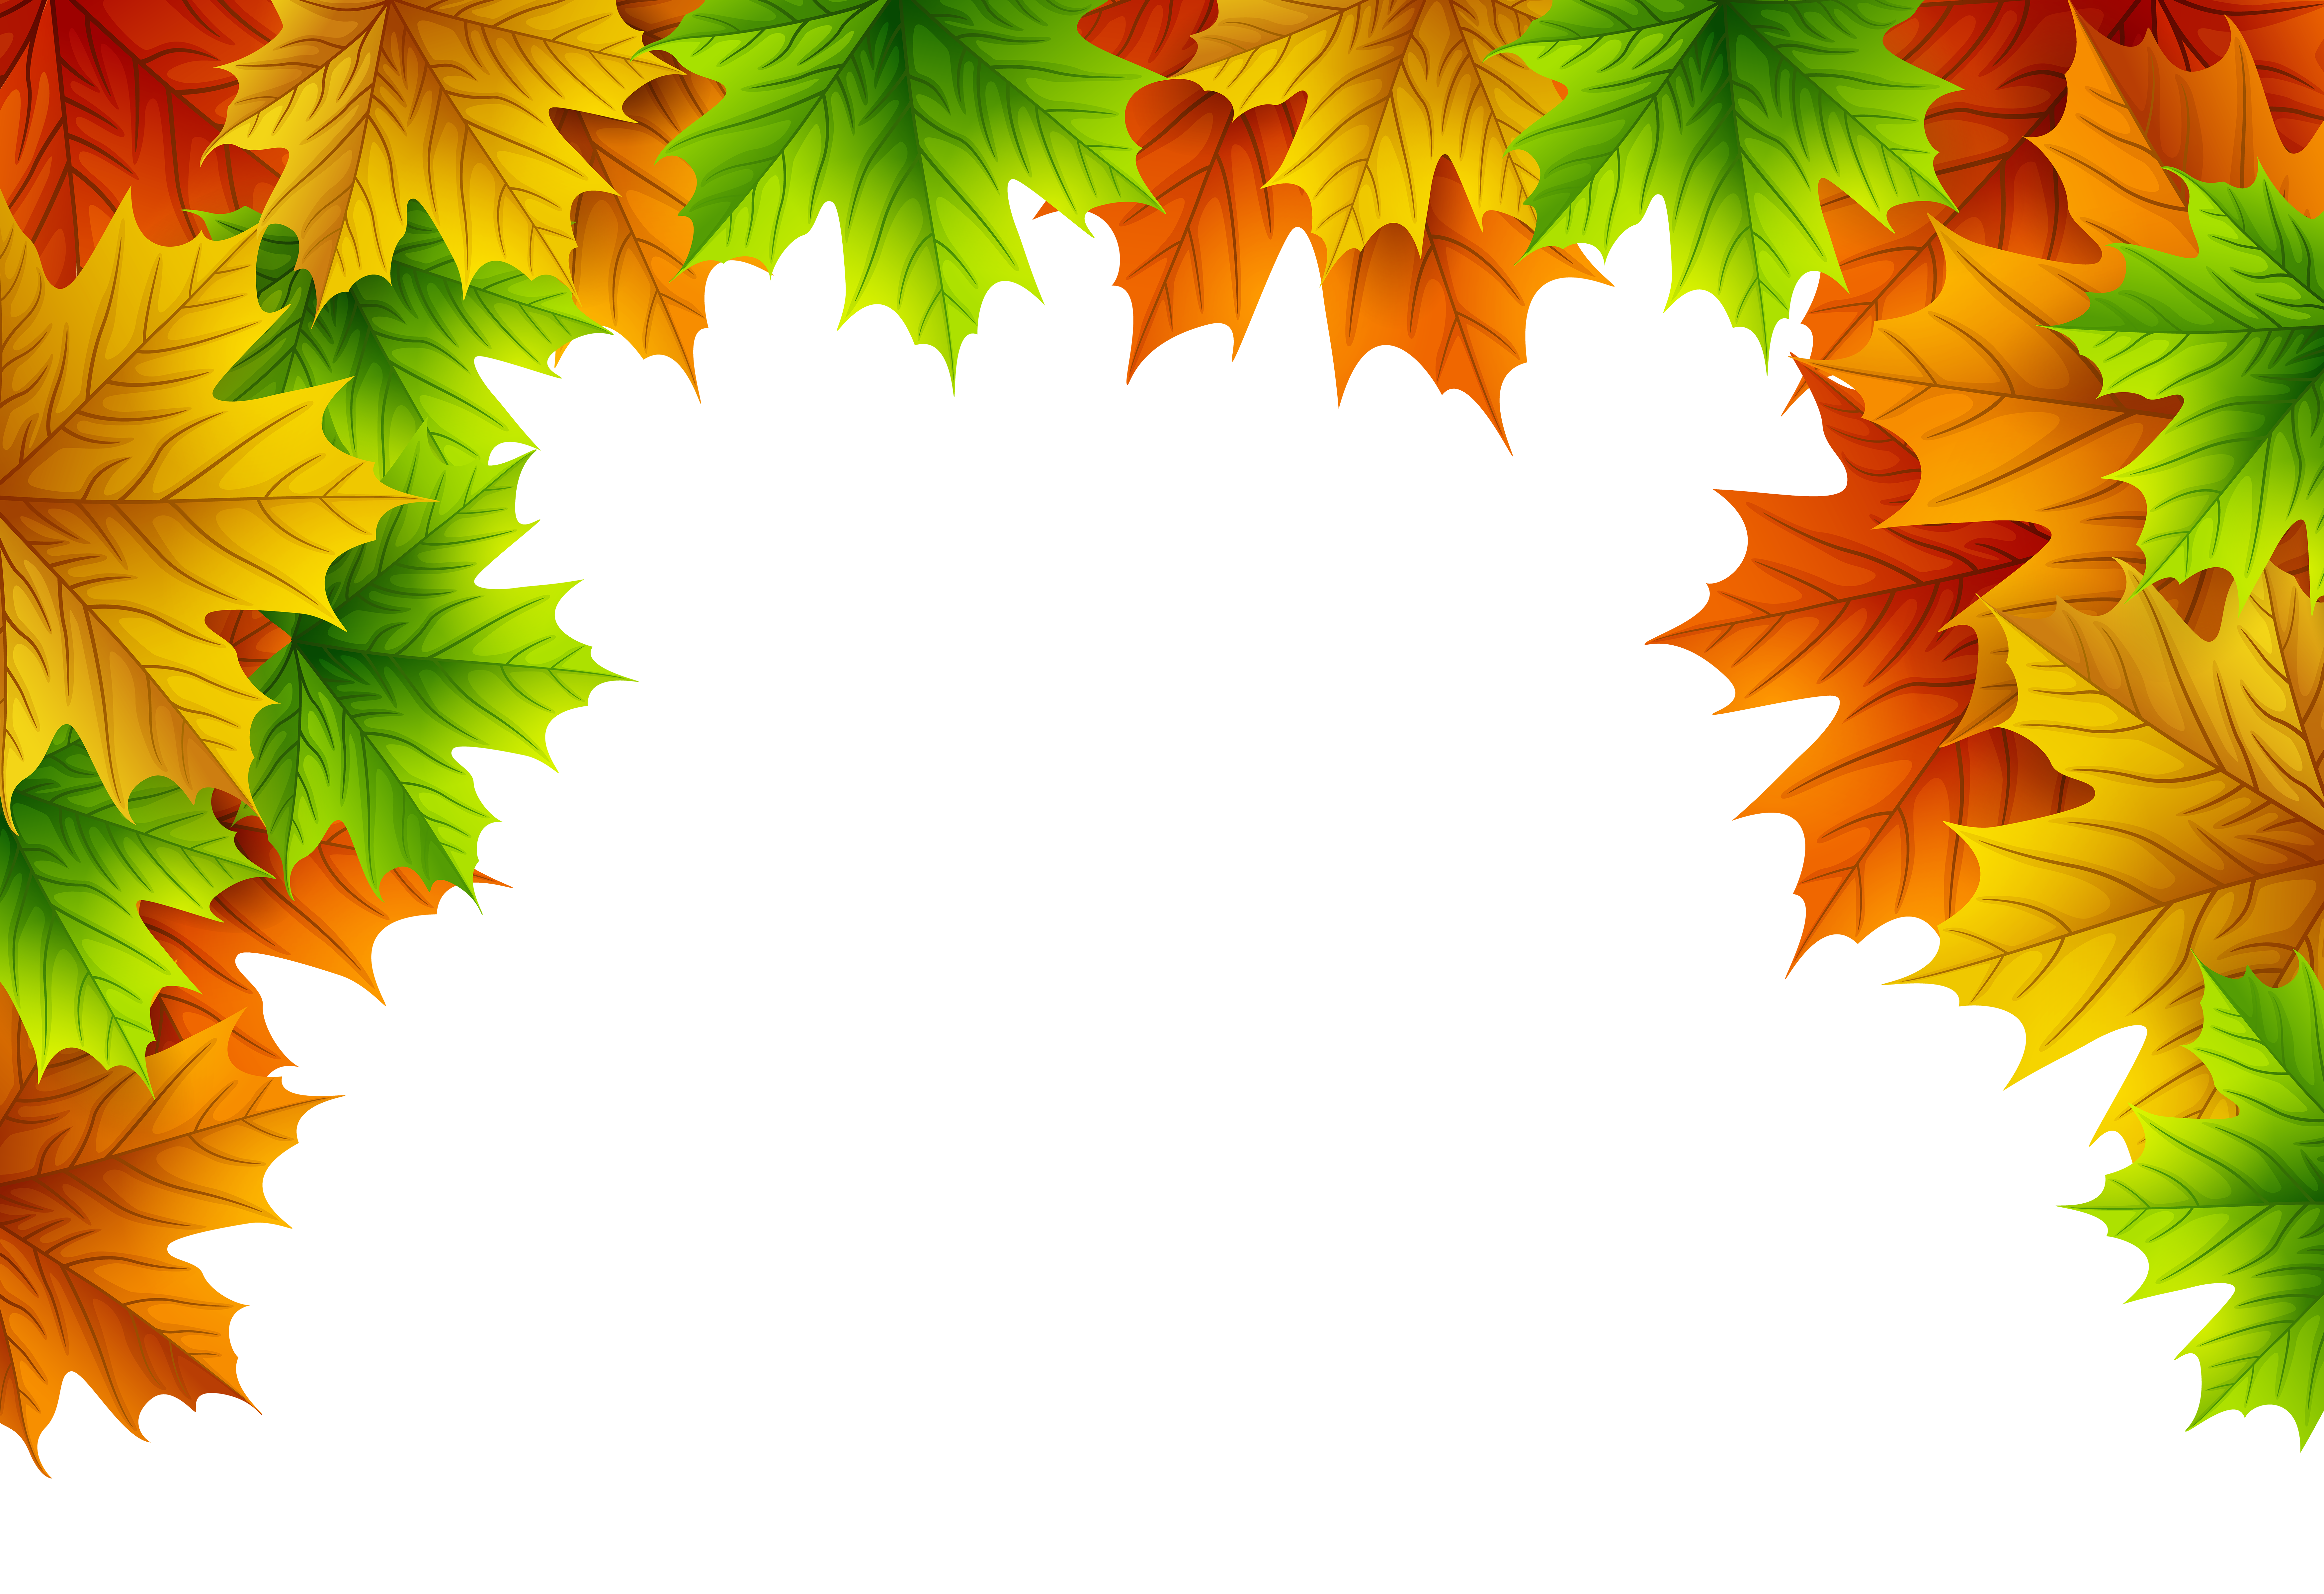 Autumn Leaves Decorative Top Border Png Image Gallery Yopriceville High Quality Images And Transparent Png Free Cli Autumn Leaves Png Images Free Clip Art